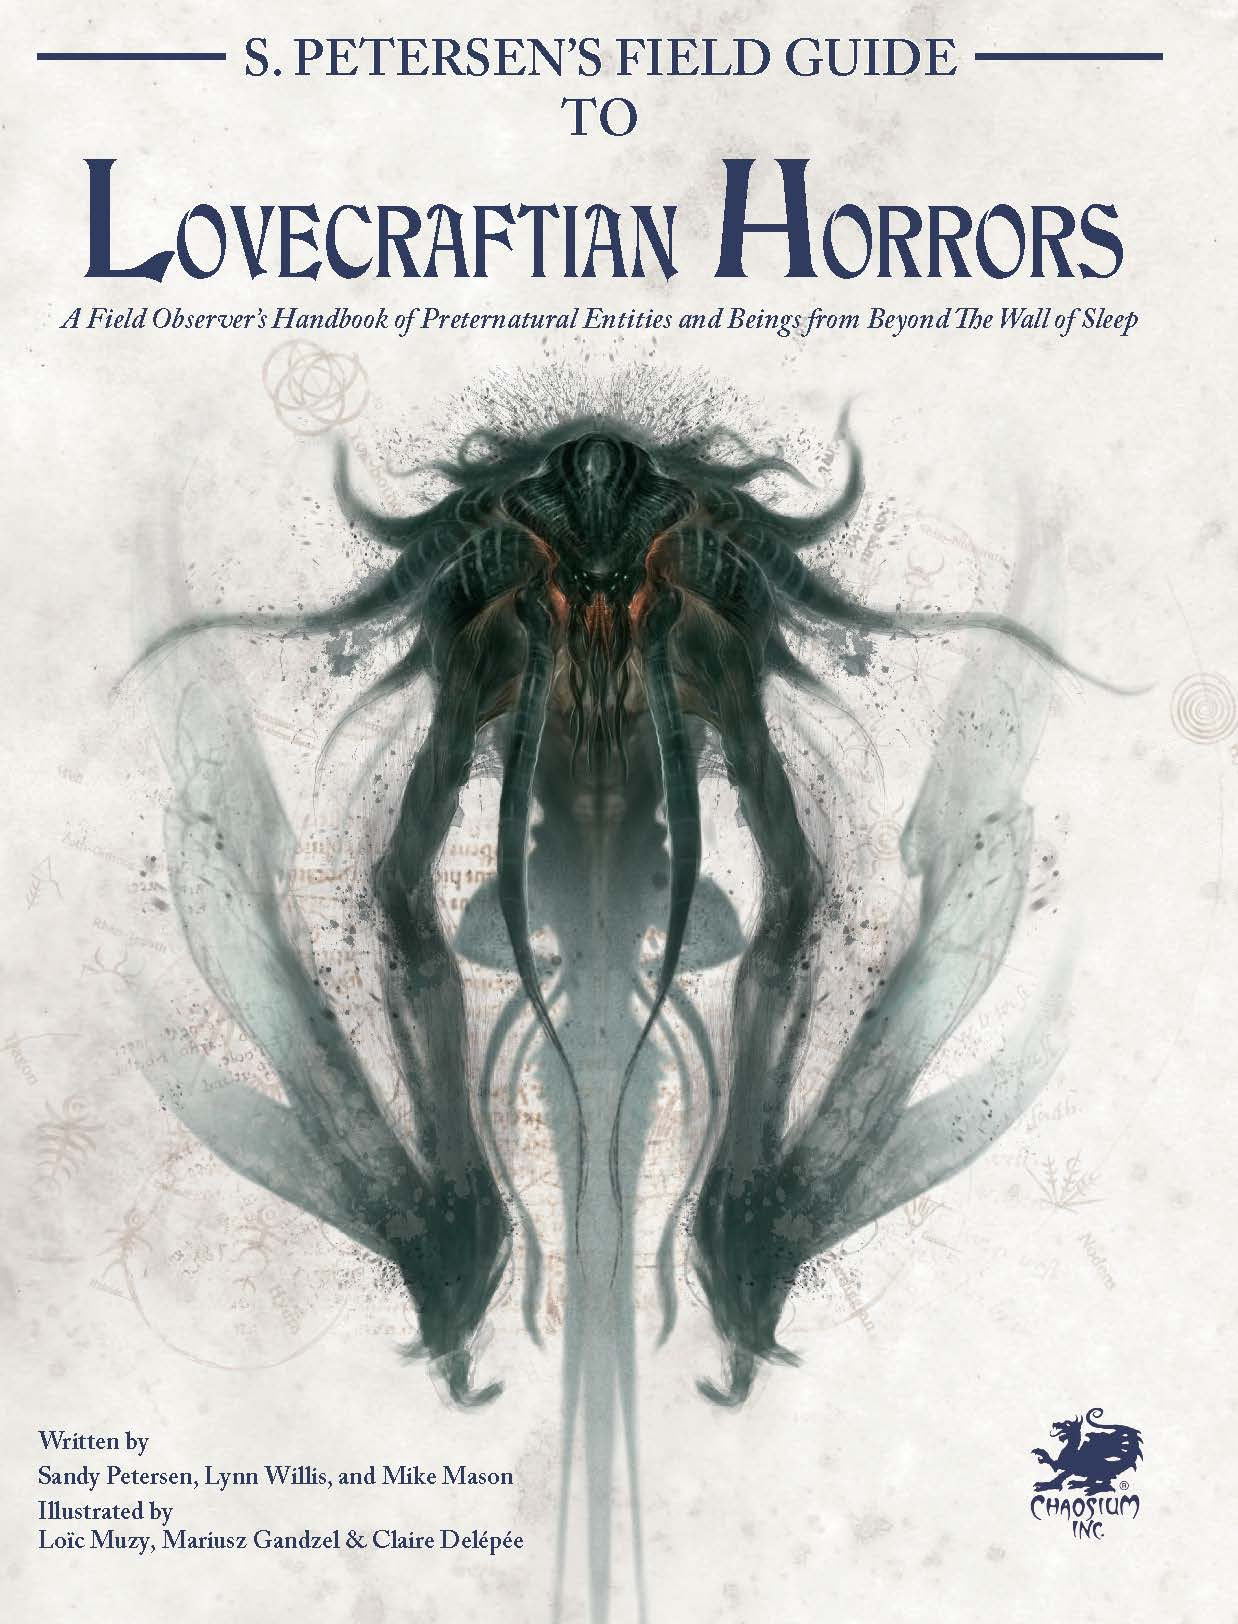 S. Petersen's Field Guide to Lovecraftian Horror - Front Cover